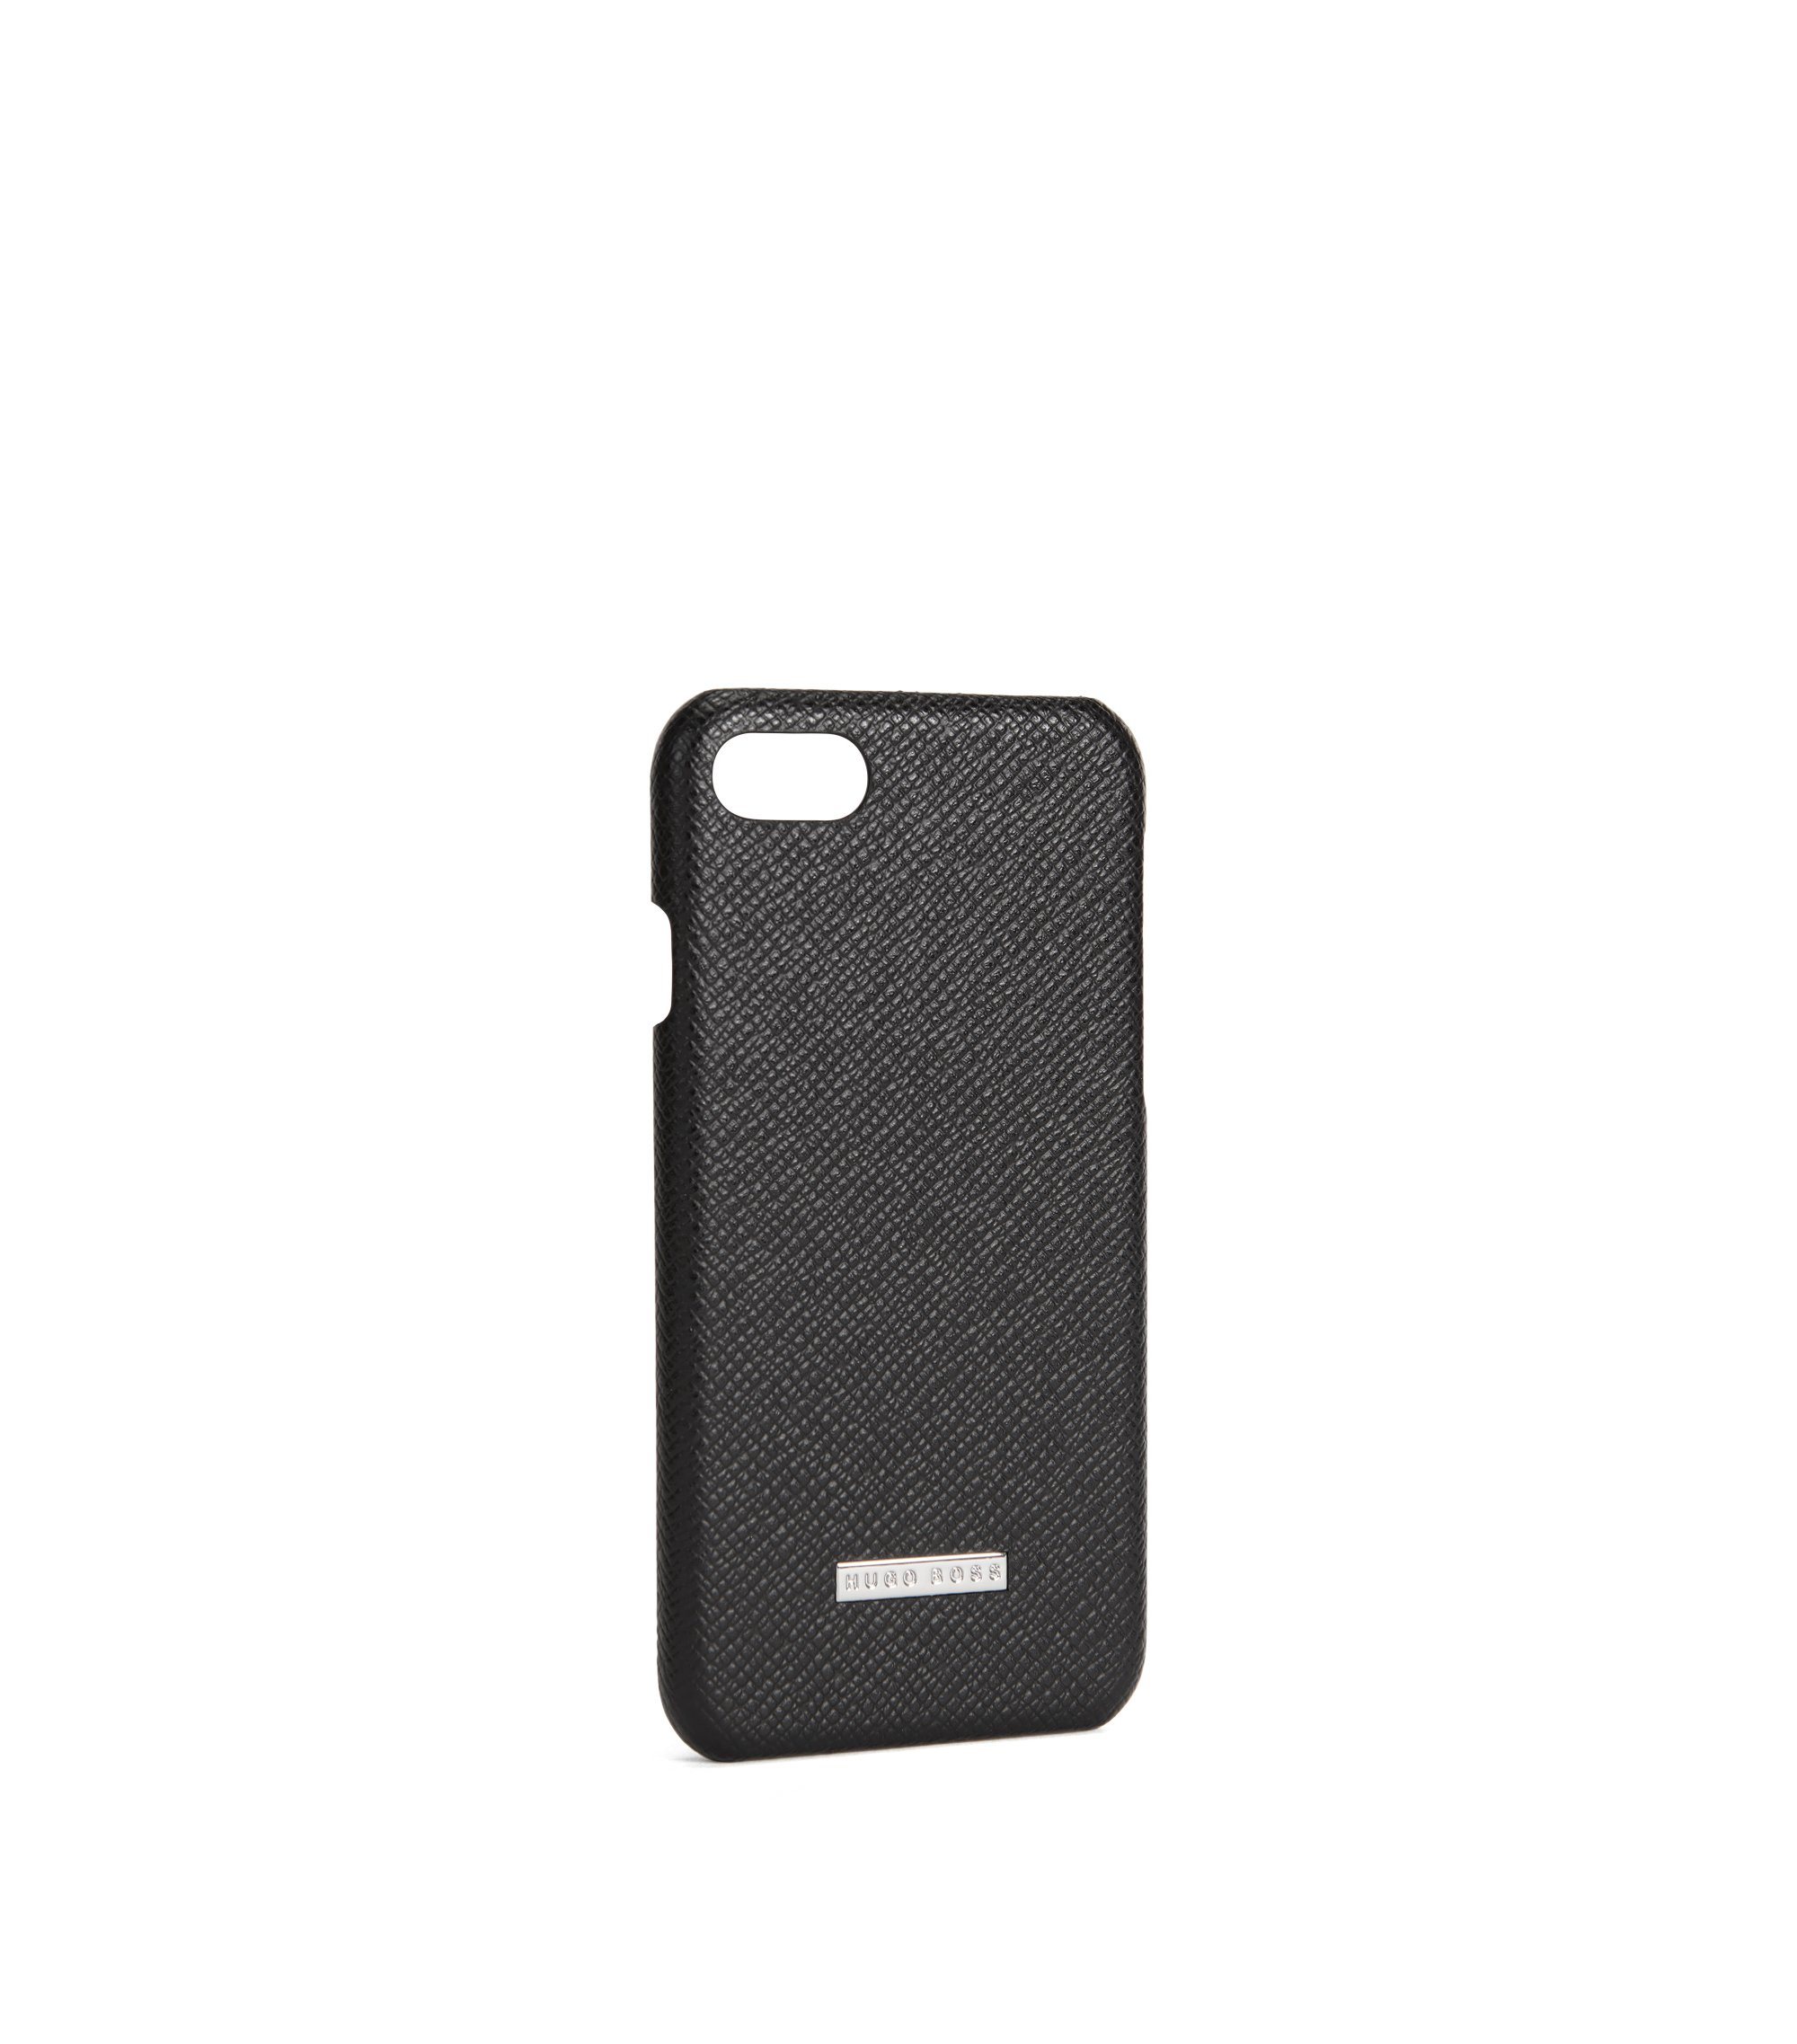 Signature Collection smartphone case in palmellato leather, Black